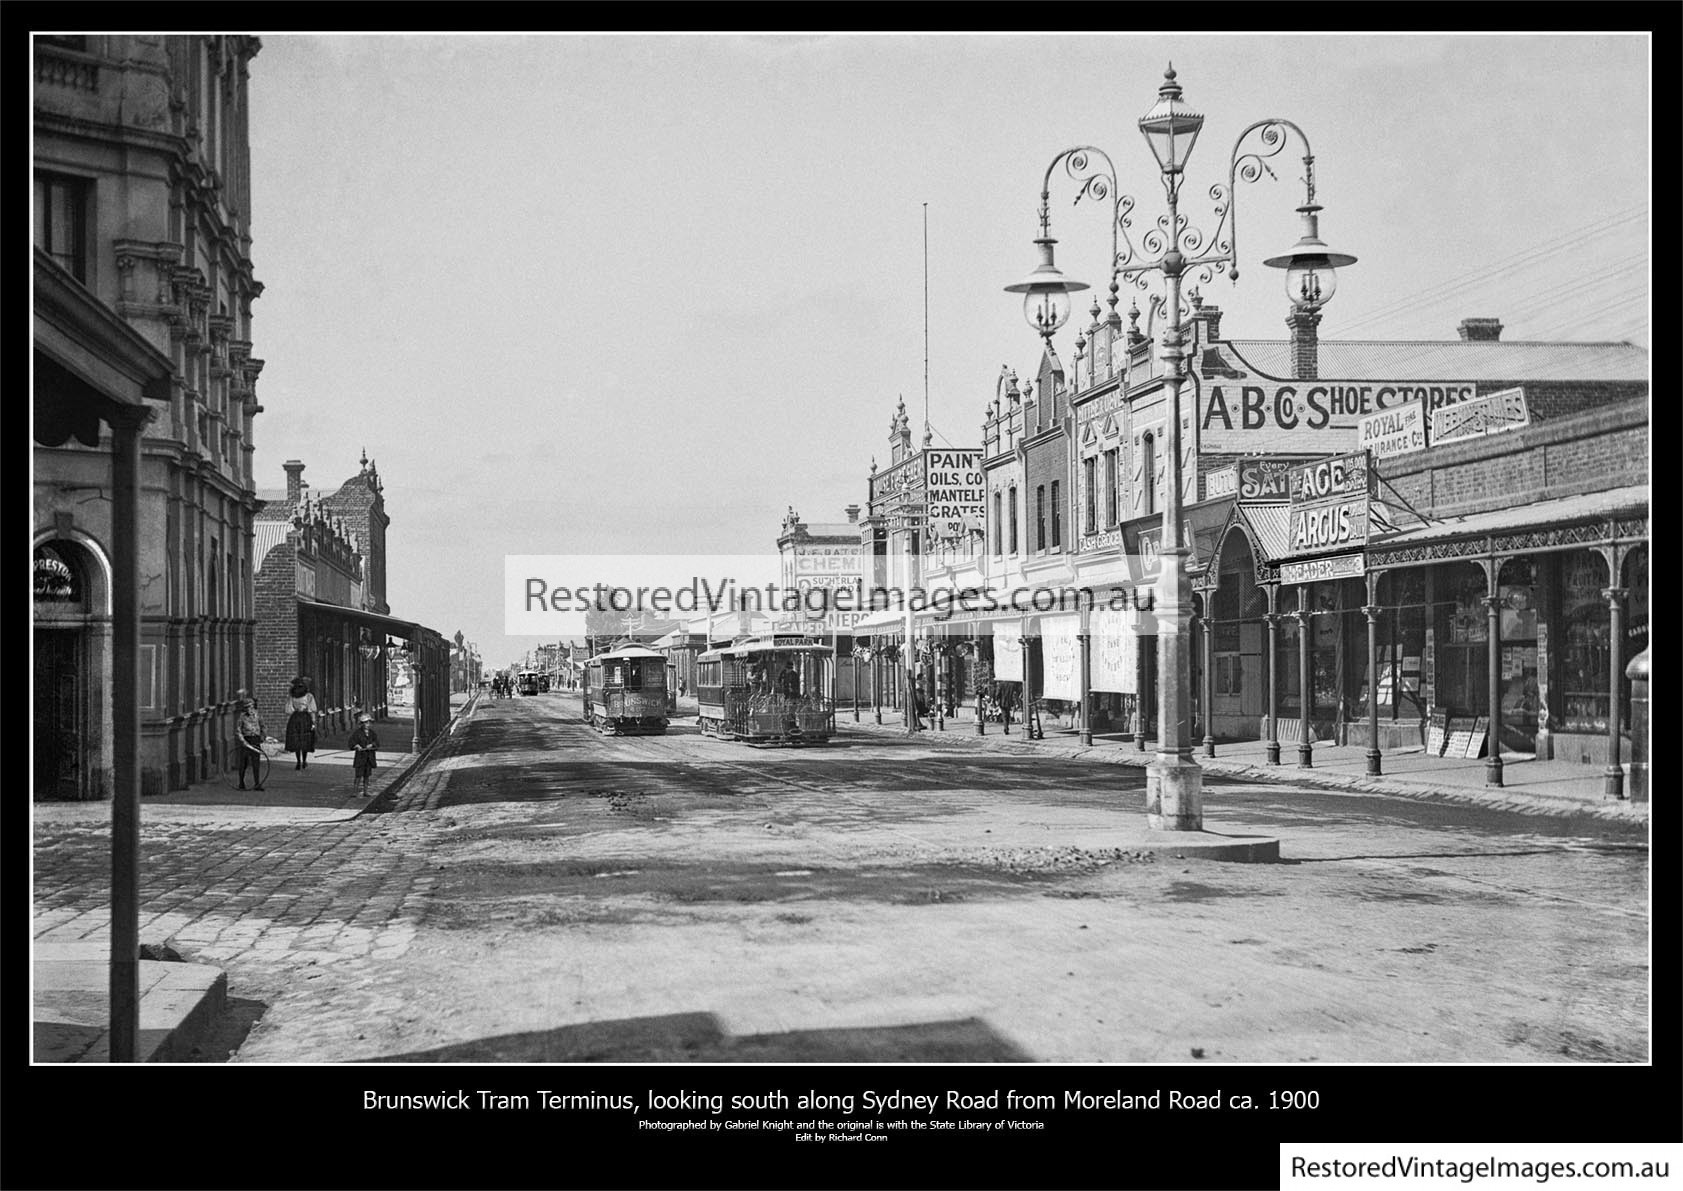 Brunswick Tram Terminus On Sydney Road – Looking South From Moreland Road Ca. 1900